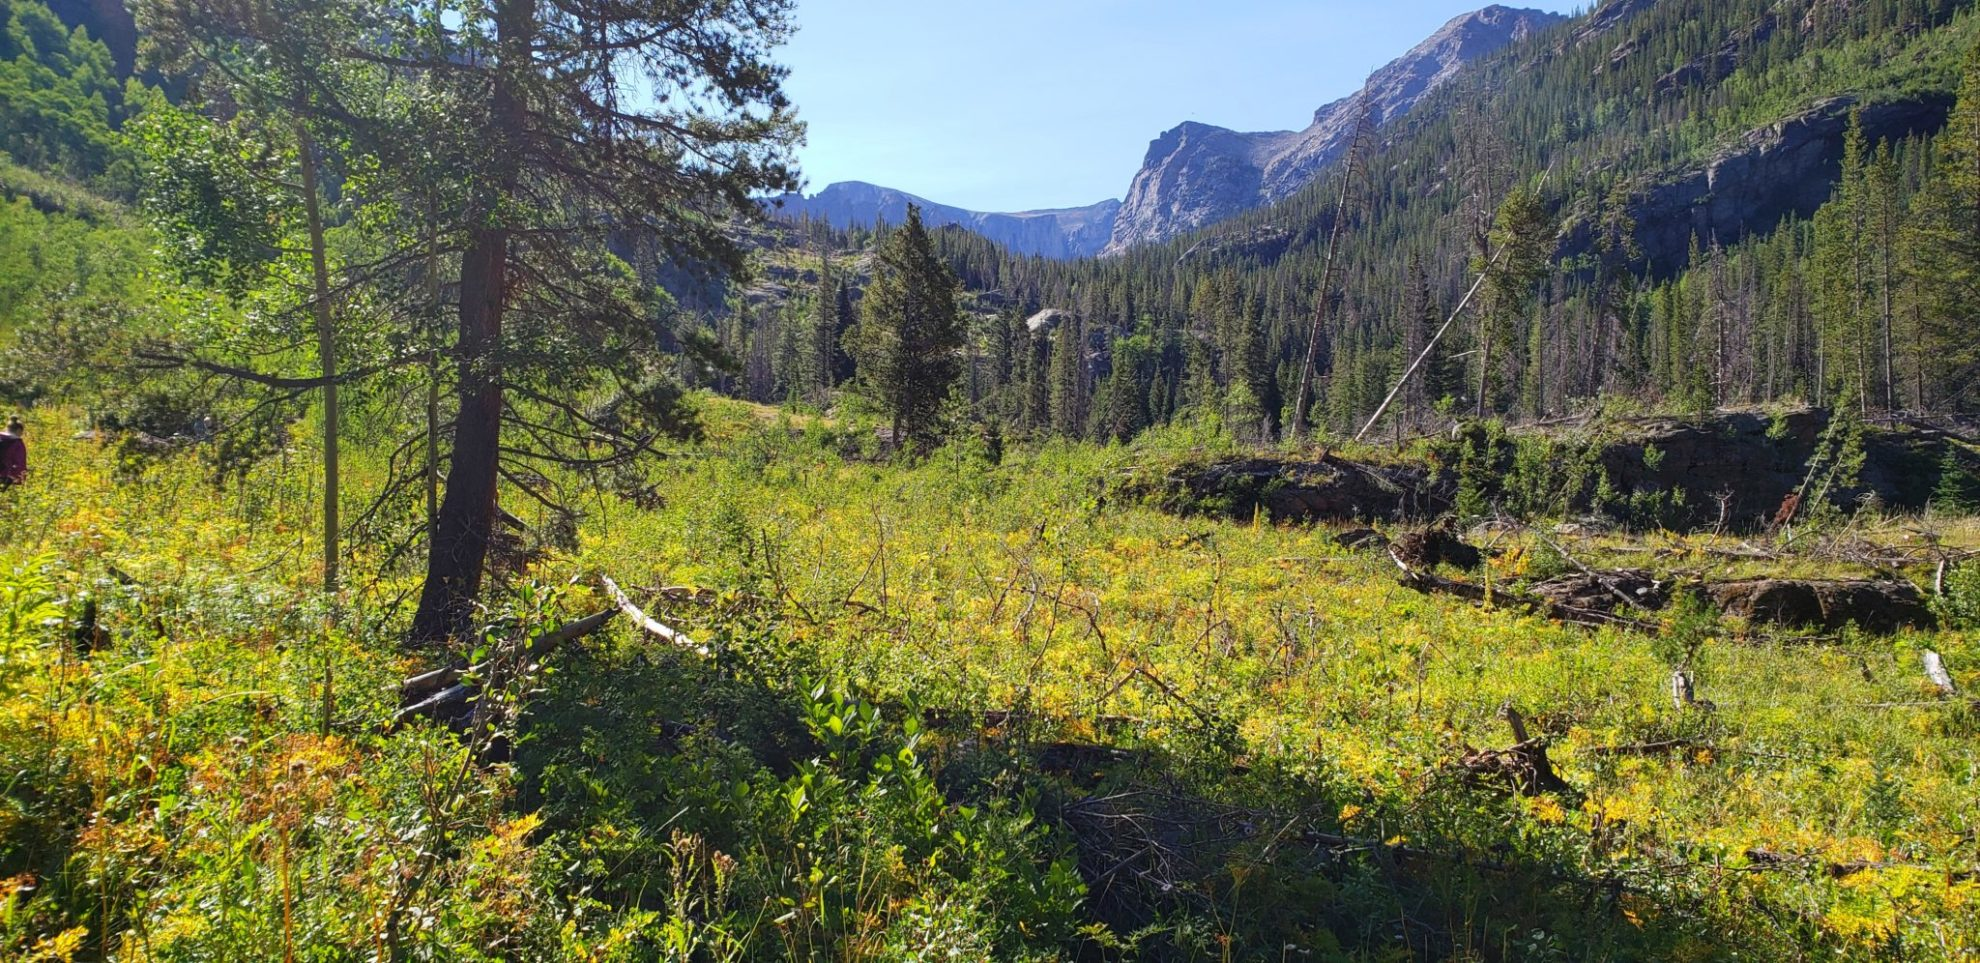 The trail crosses several meadows on the way to Crater Lake